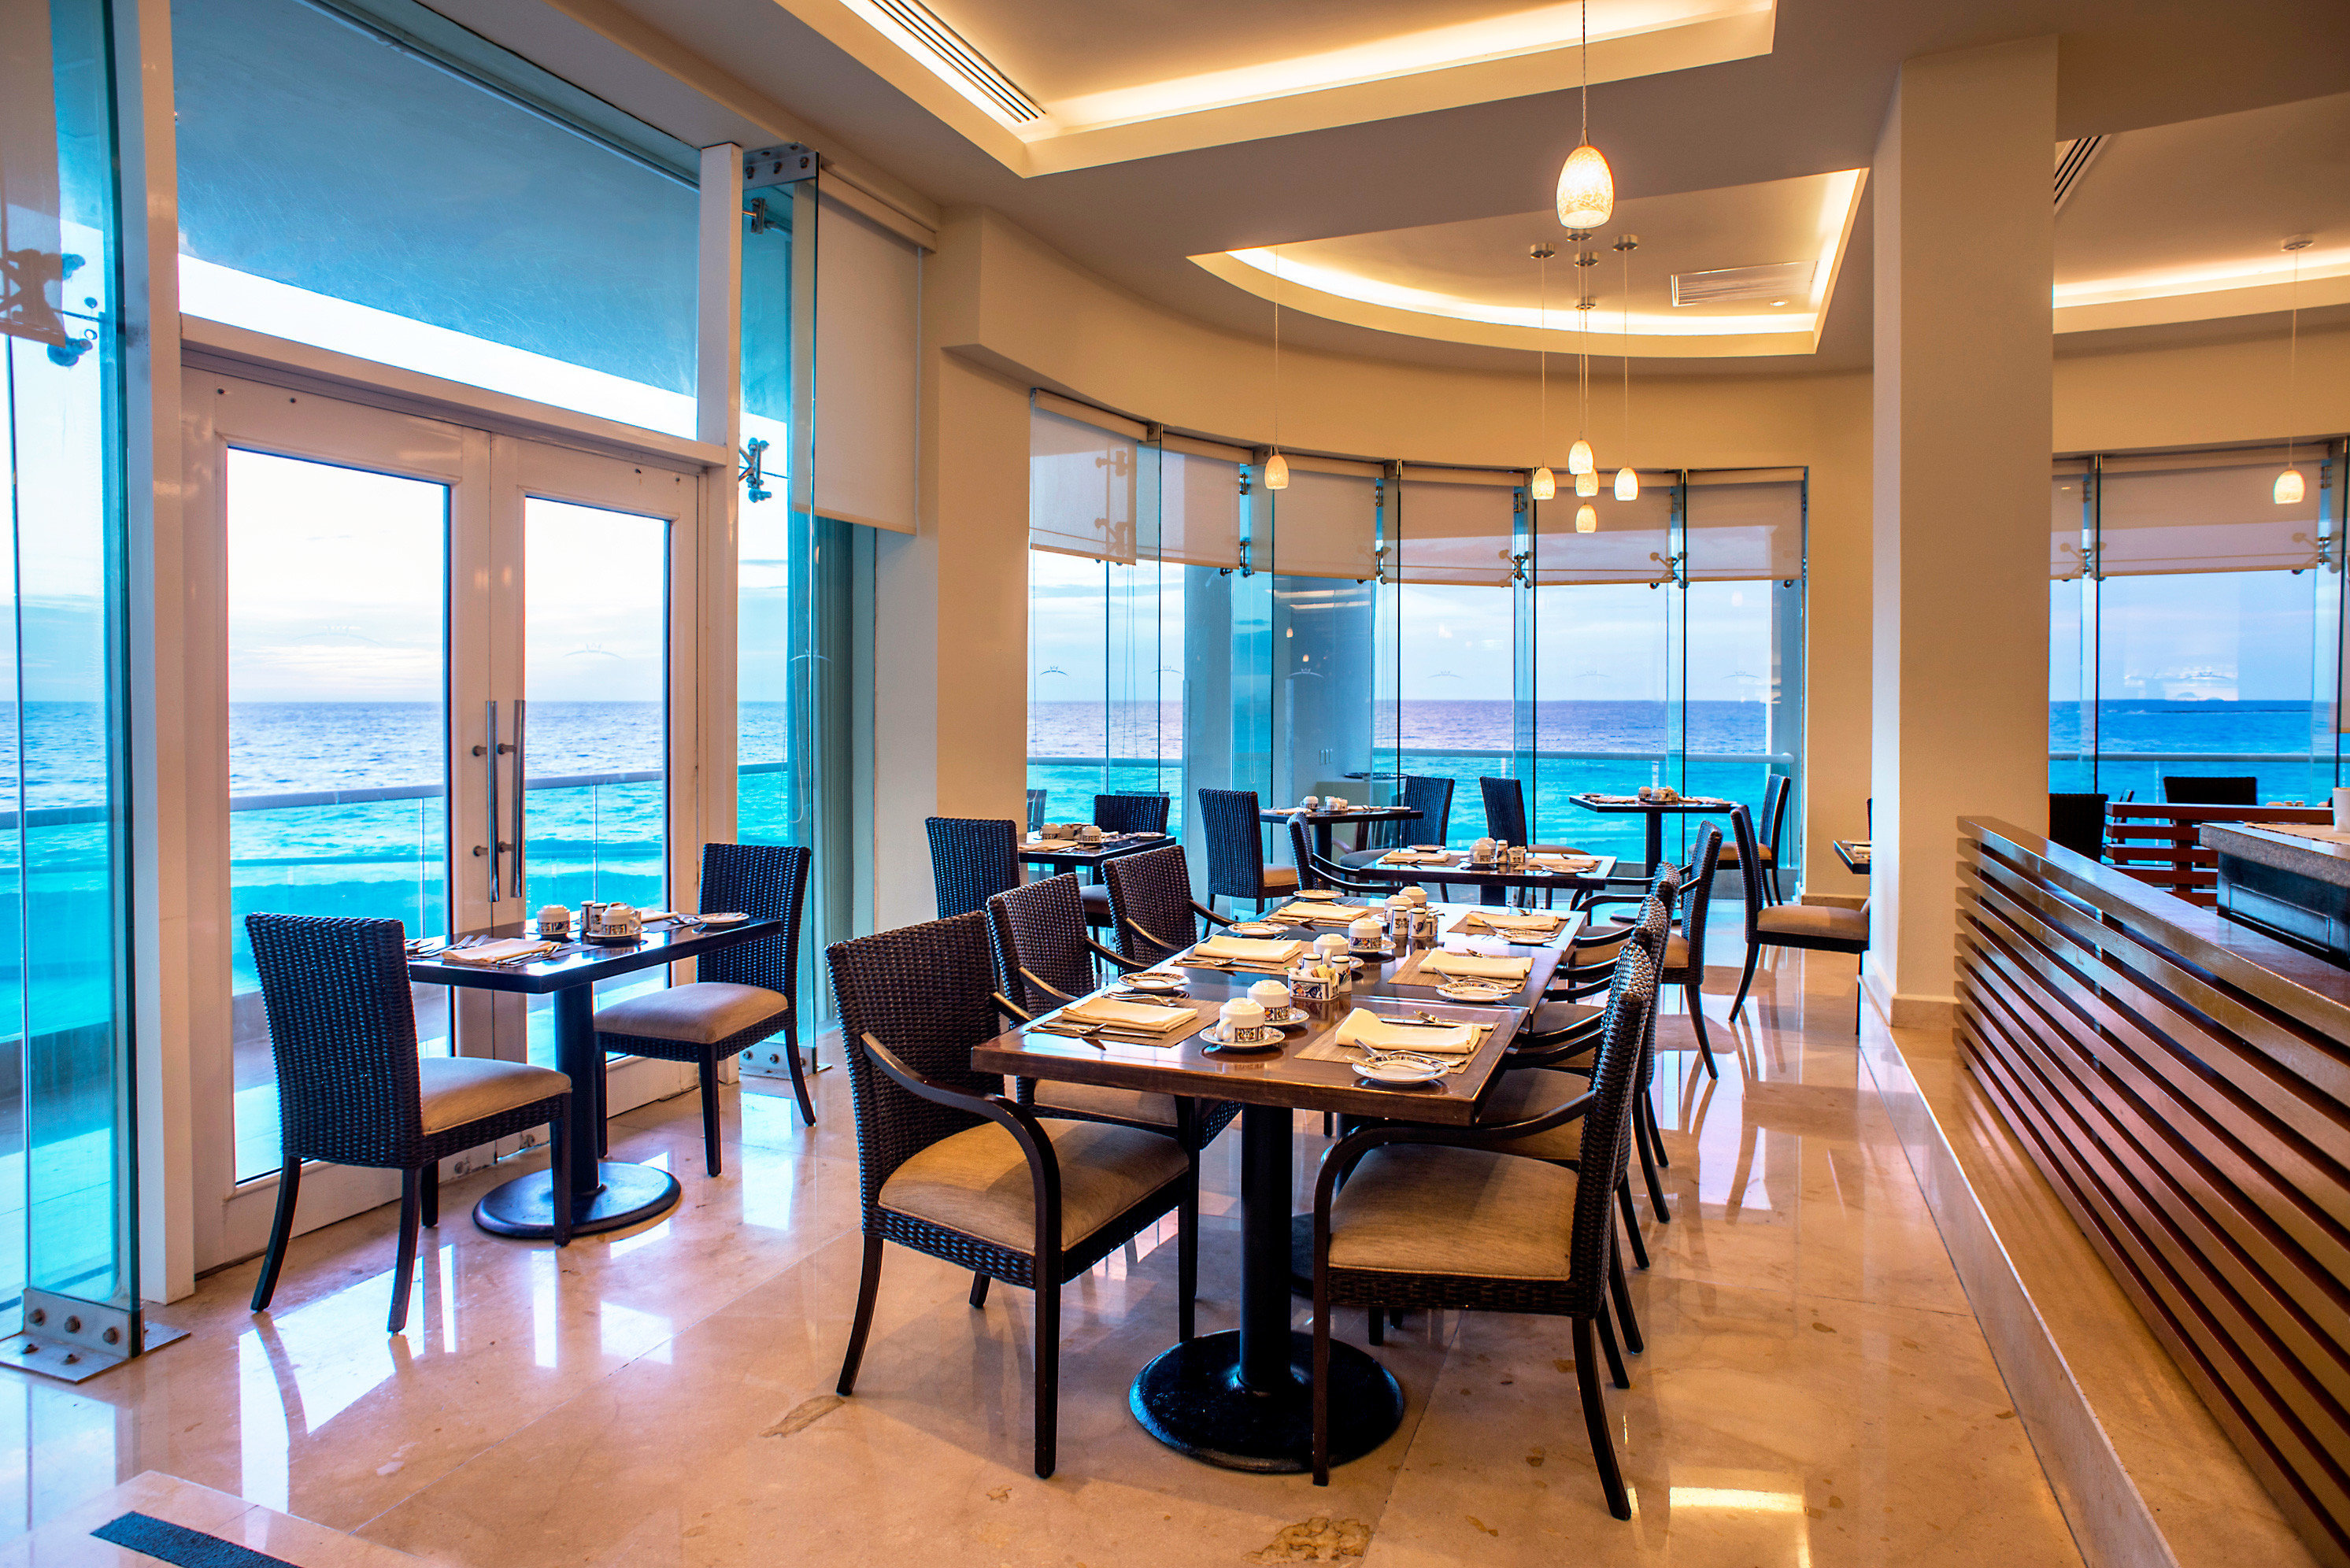 Adult-only Bar Beachfront Drink Eat Scenic views chair property Resort condominium restaurant Dining home wooden living room Suite Island overlooking lined